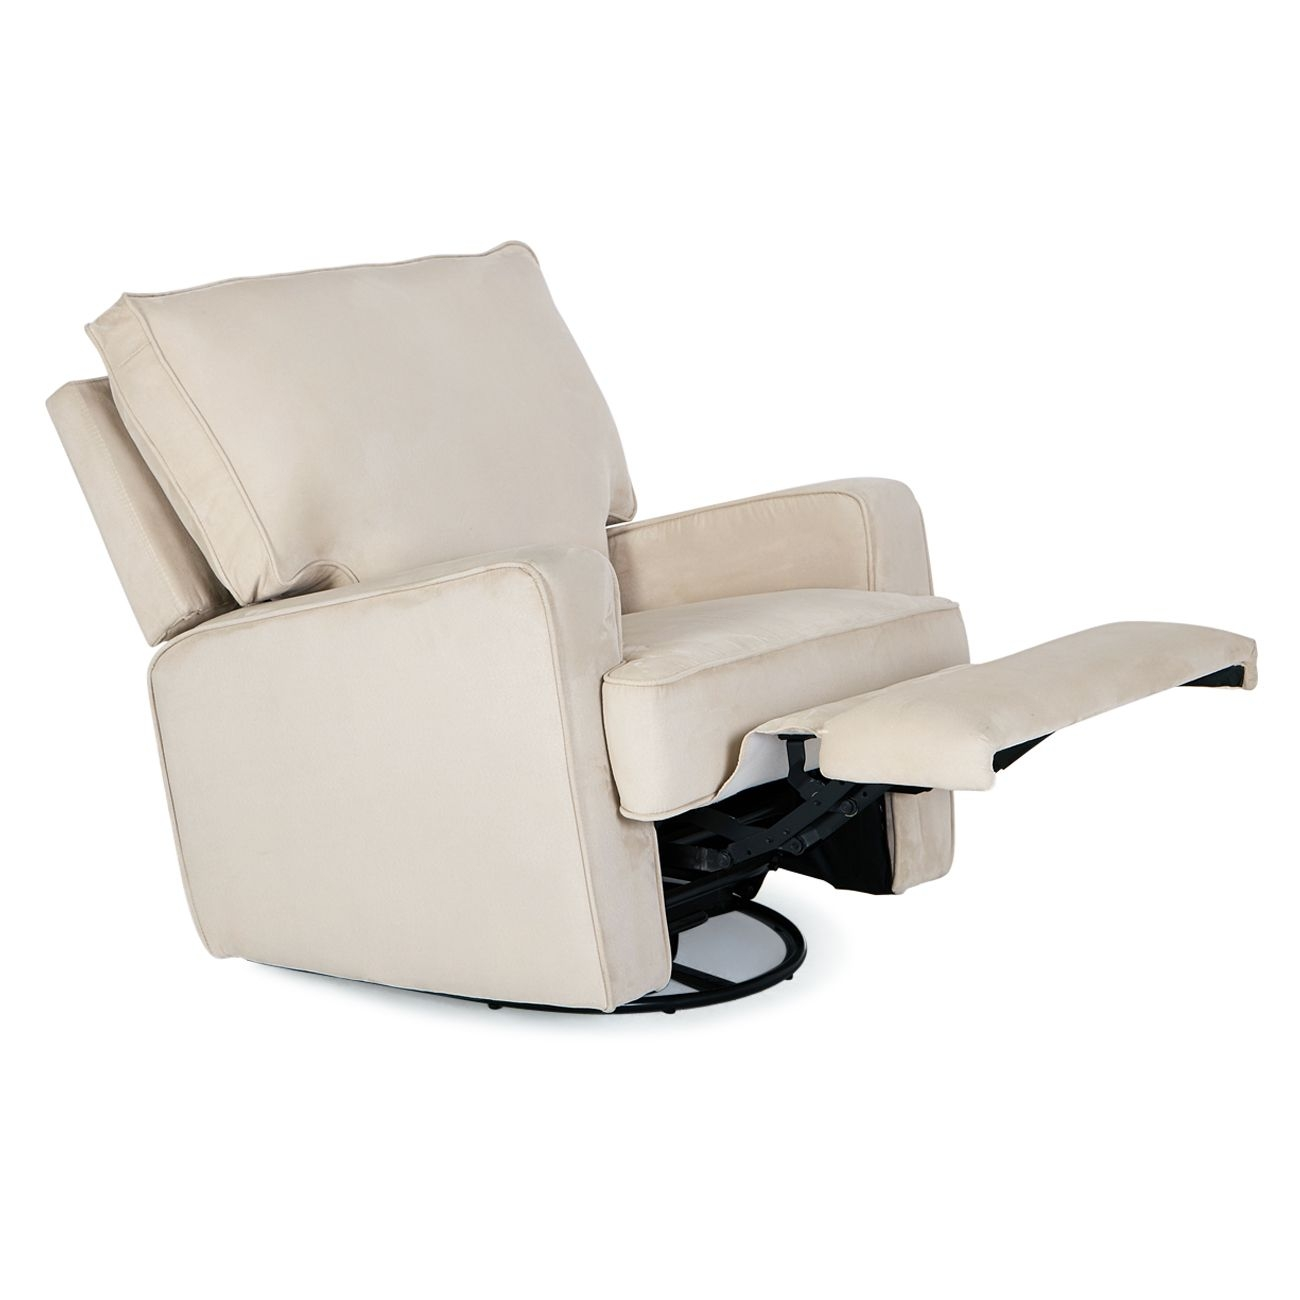 Recliner Sofa Swivel Chair Linen Ergonomic Padded Seat Lounge Living Room Beige  Ebay